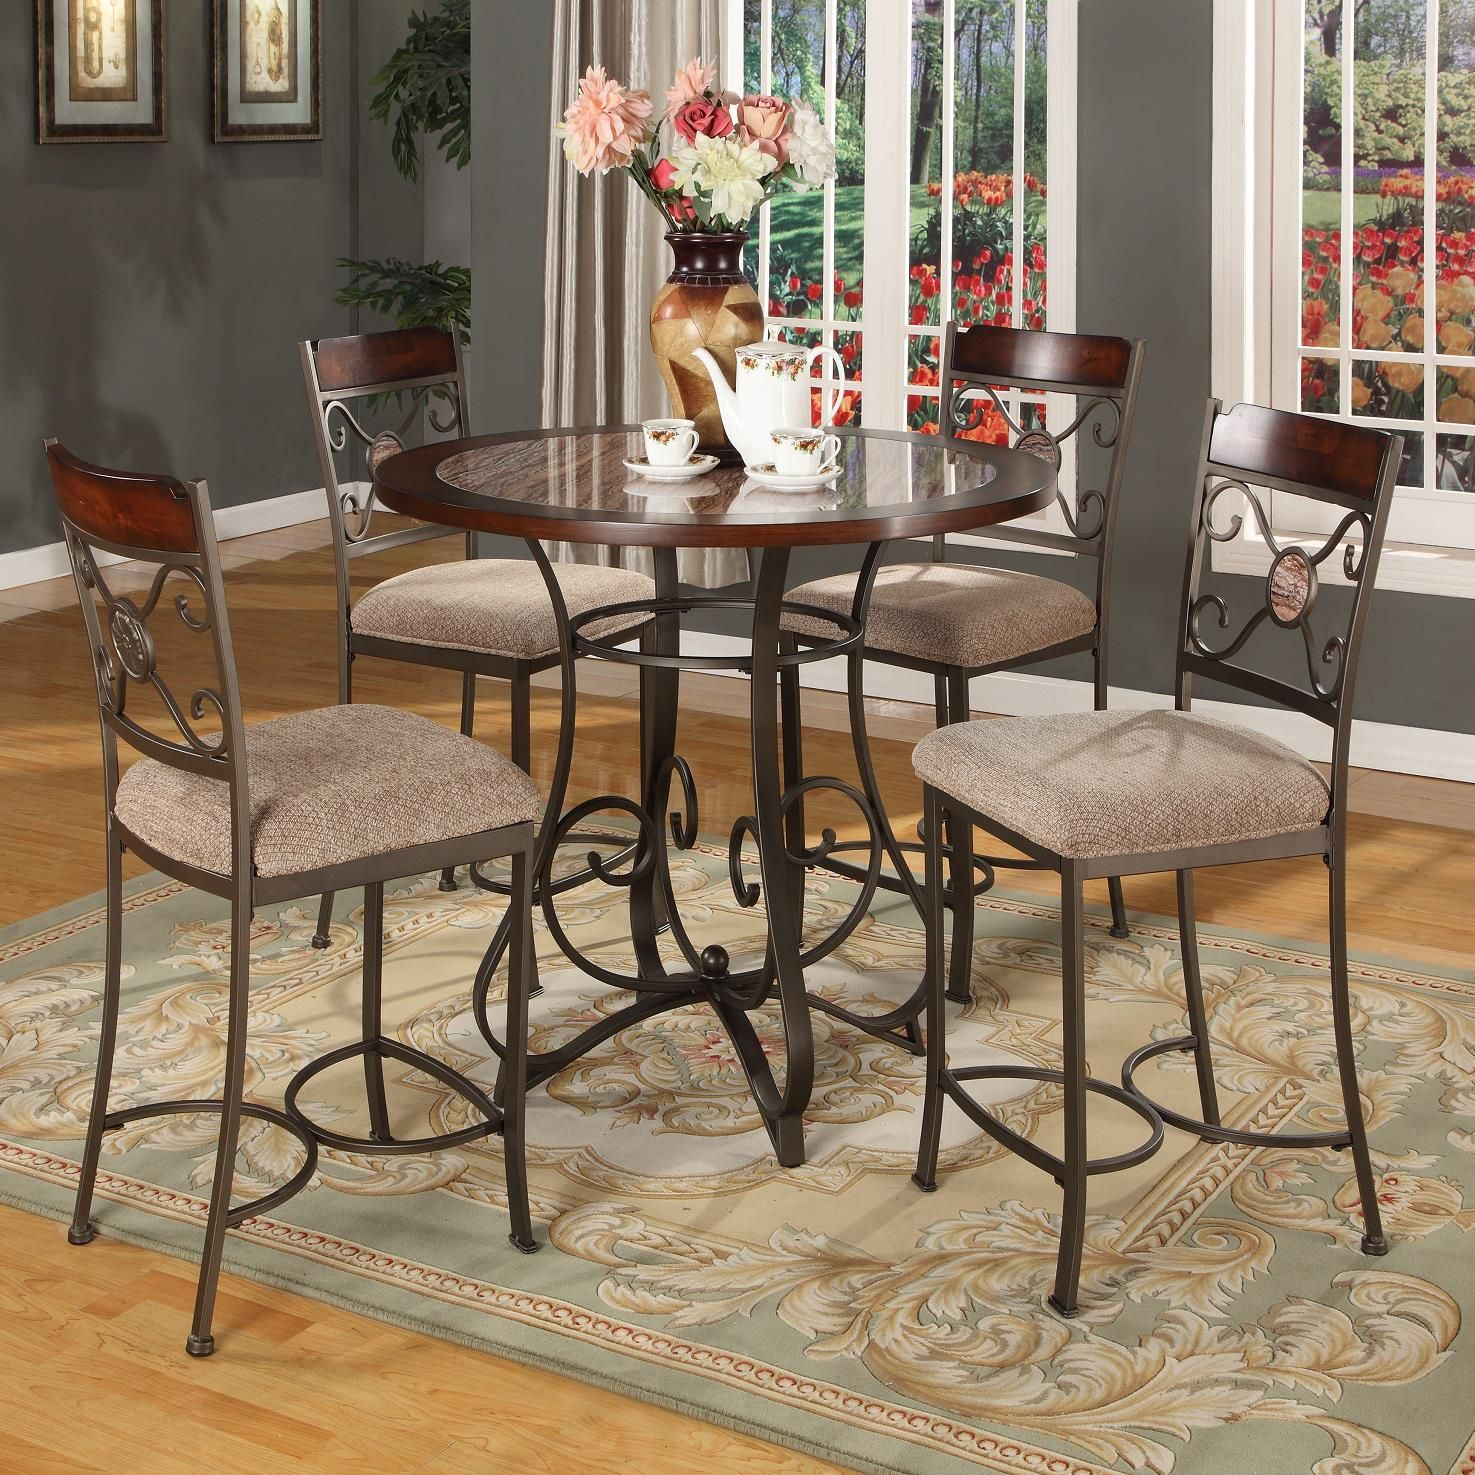 Table And Chair Rental Birmingham Al Party Chairs For Rent Lifestyle Dc067 Metal Counter Height Pub